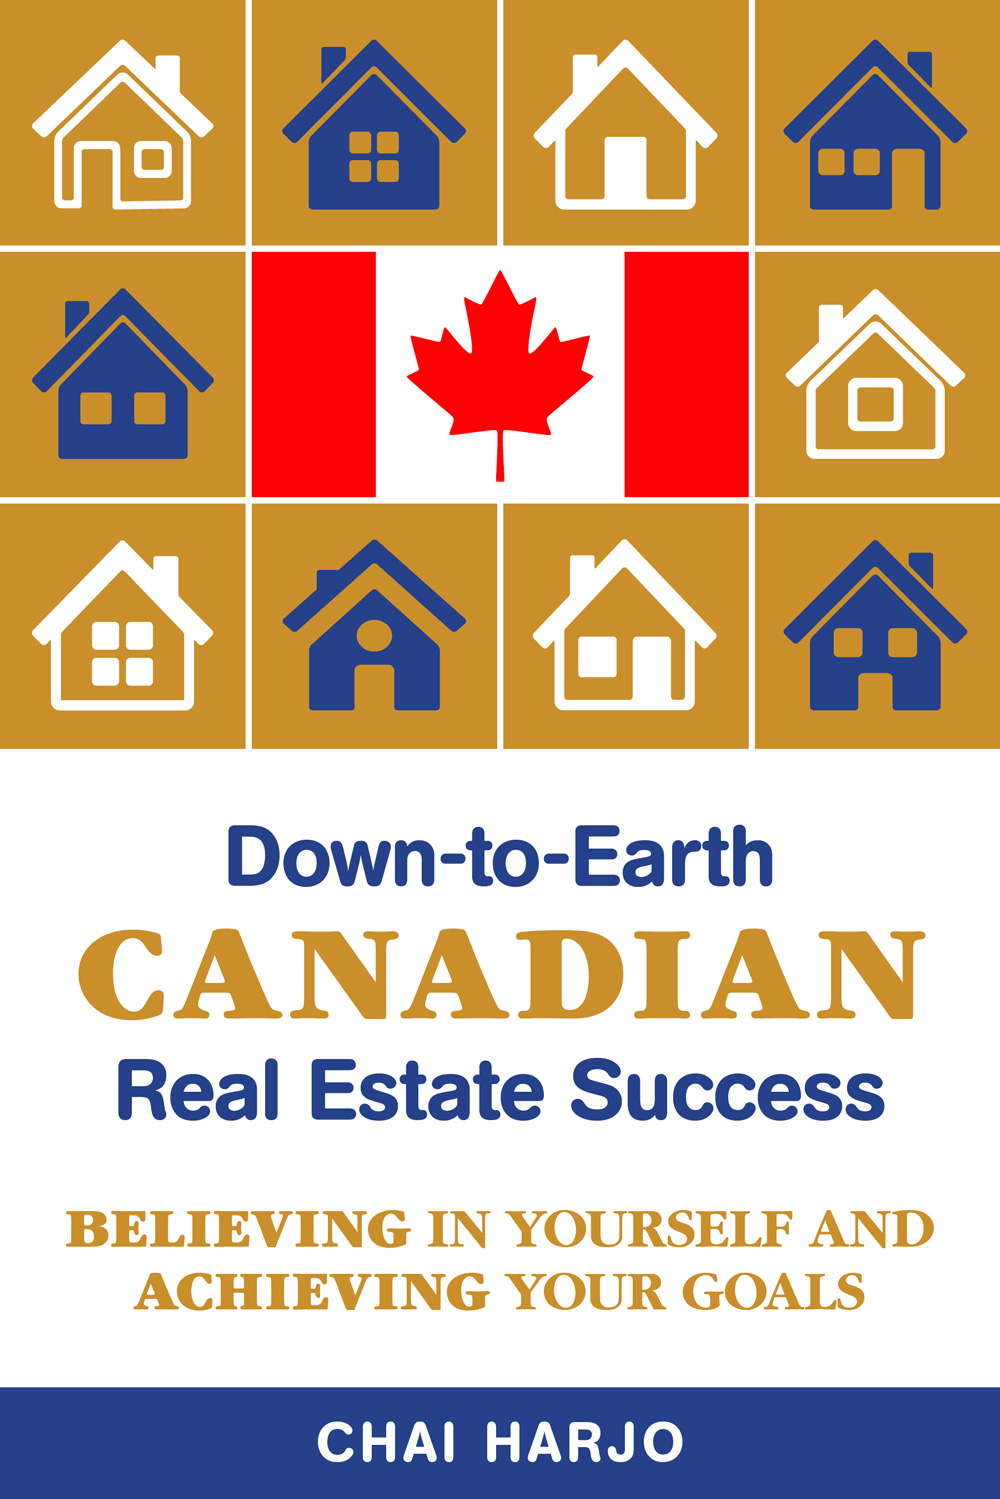 Down-to-Earth-Real-Estate-Success-Cover